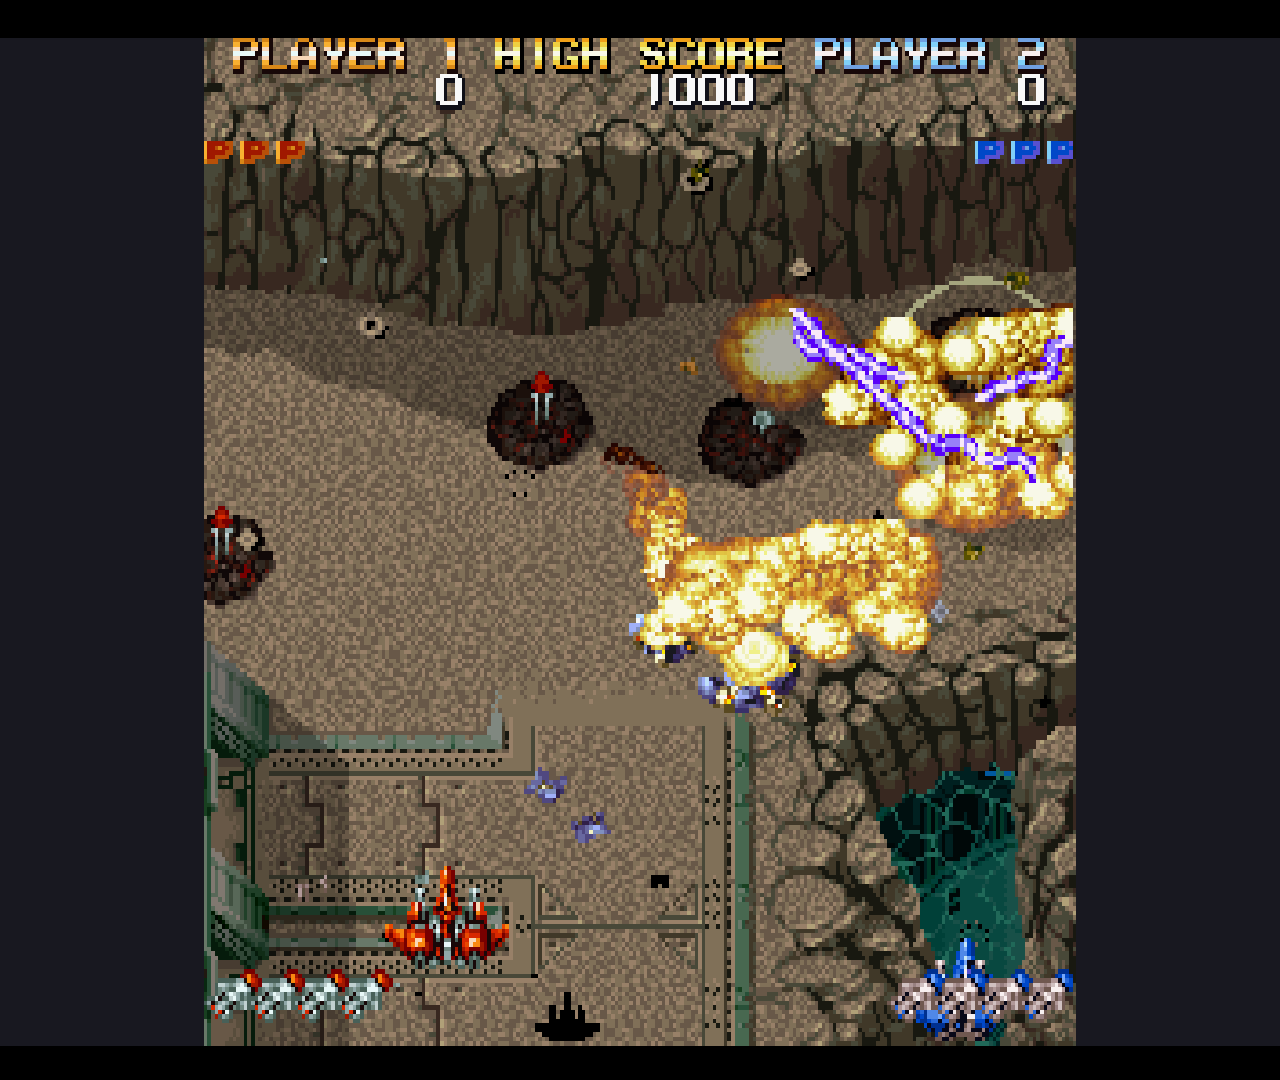 Figure 10 - Very good looking graphics for up to two players lots of explosions on and enemies on the screen